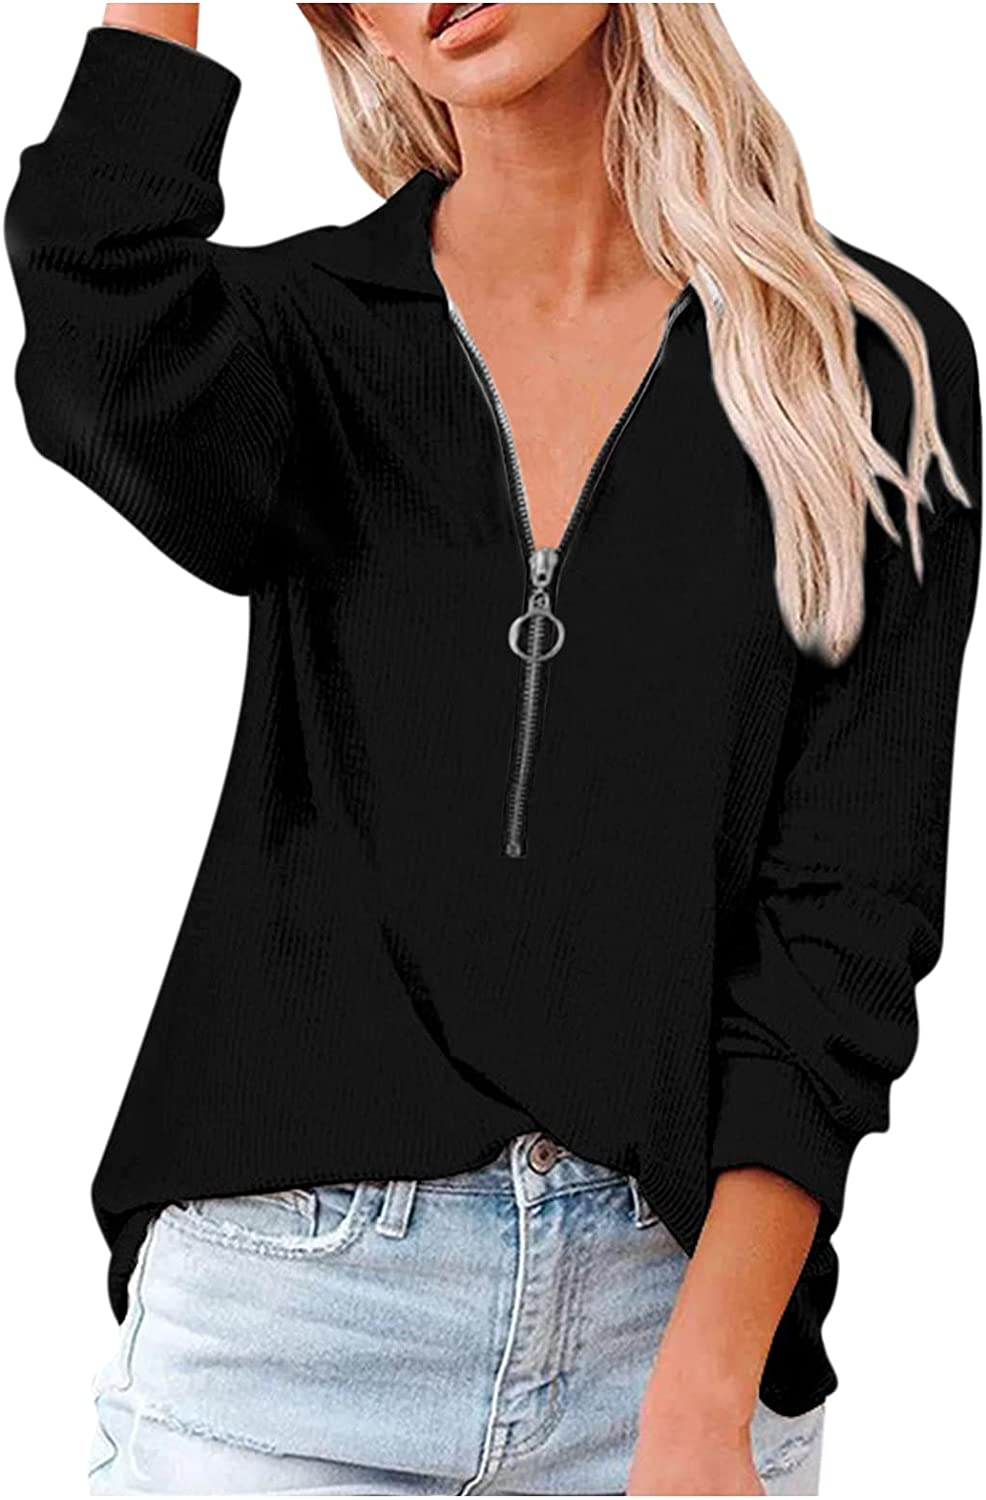 T-Shirts for Women Discount Ranking TOP17 is also underway Lapel Long Sleeve V Sweatshi Sexy Zipper Neck